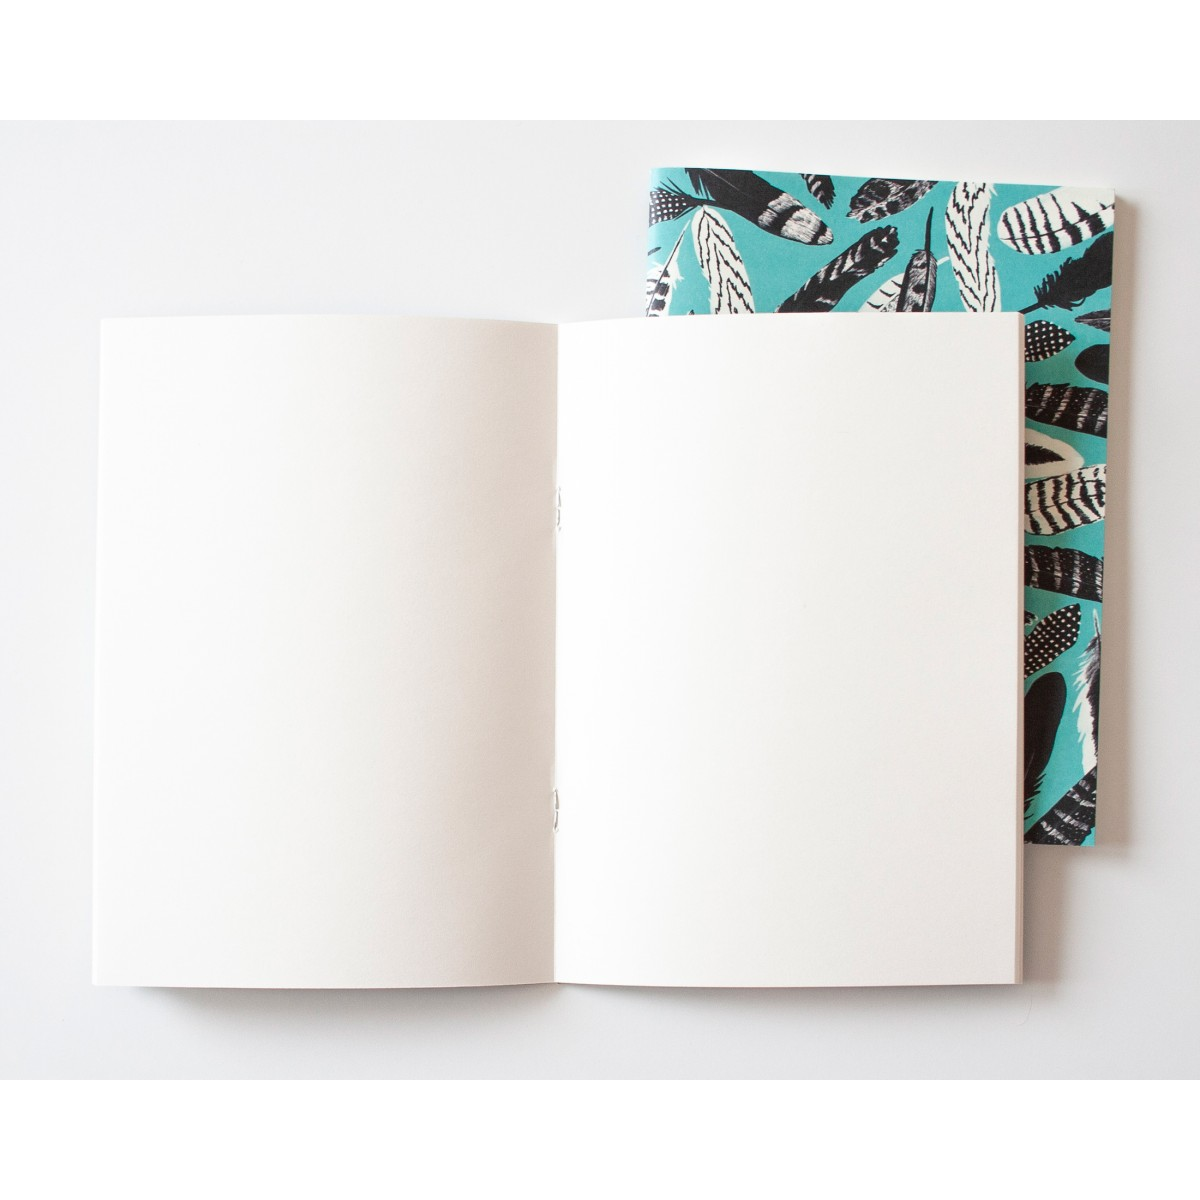 Notizheft A5 Federn blau // Papaya paper products